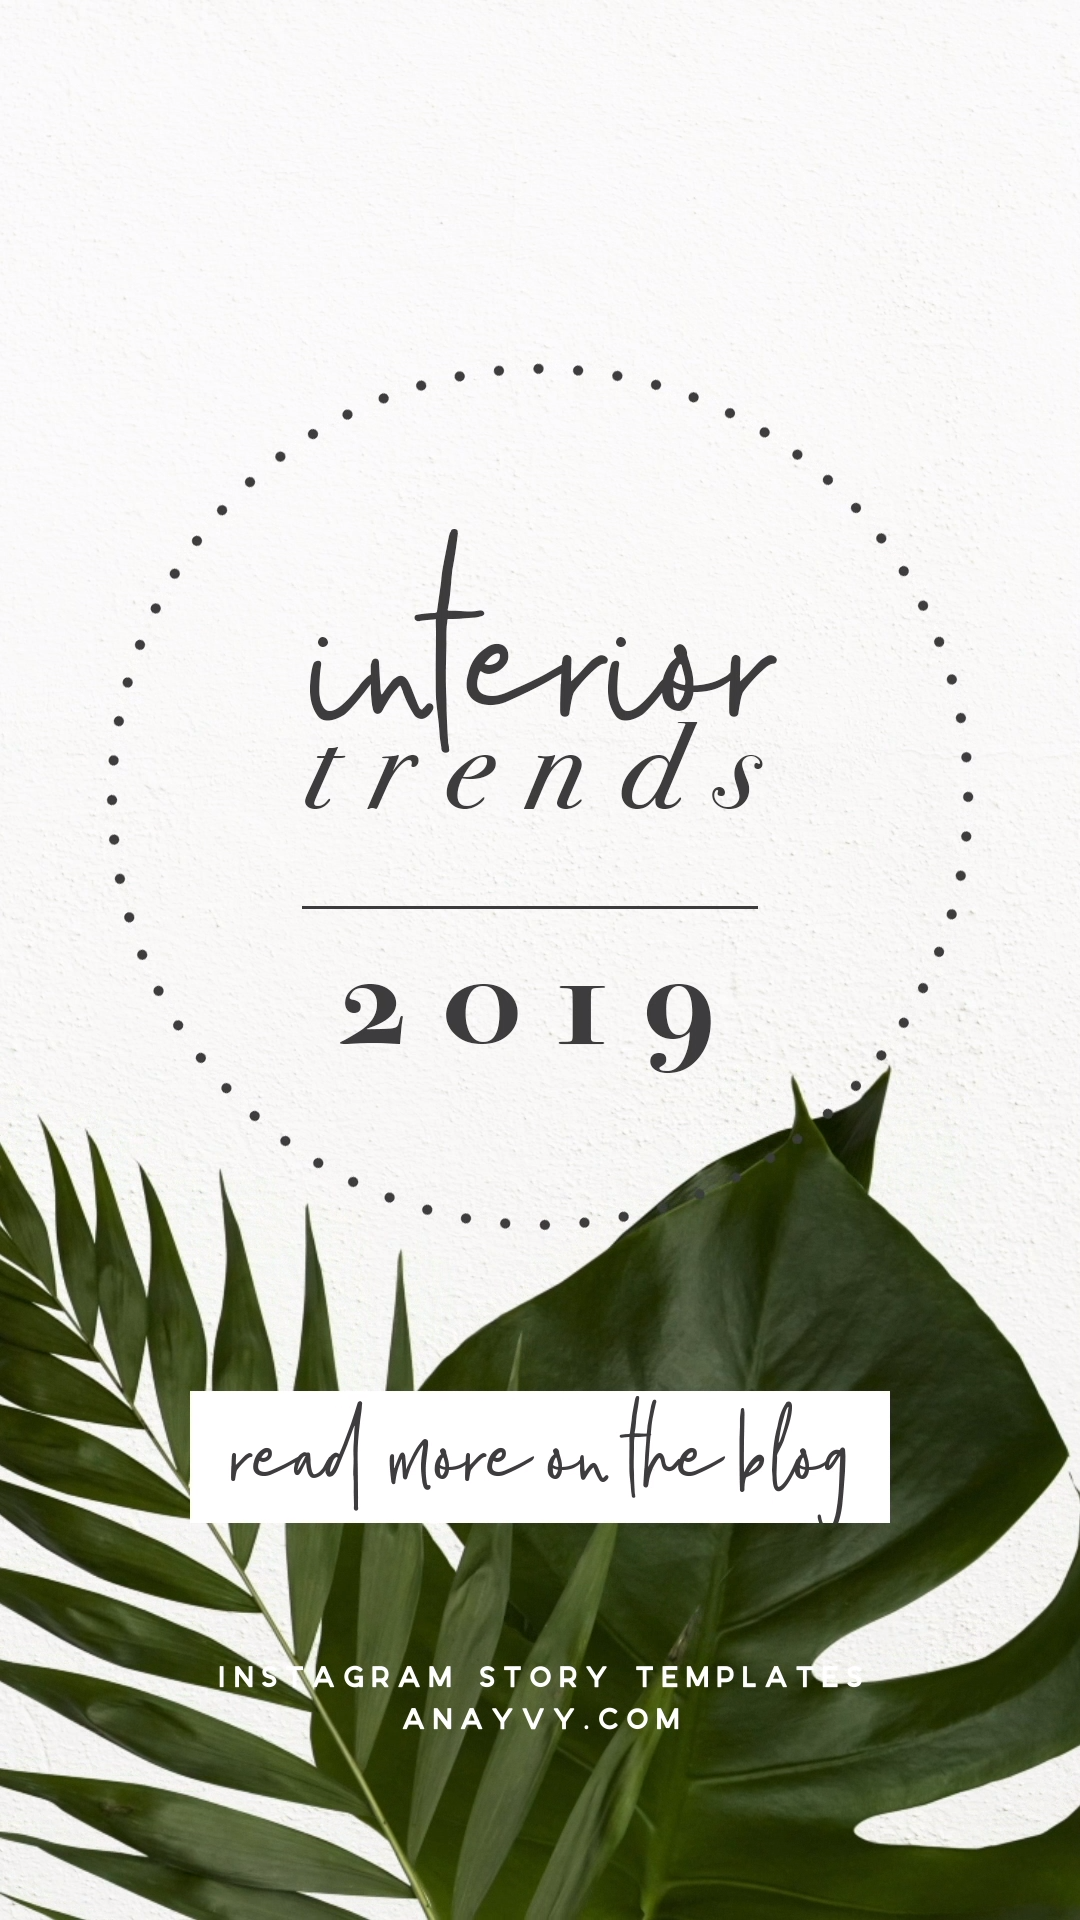 Animated Instagram Story Templates |tropical palm